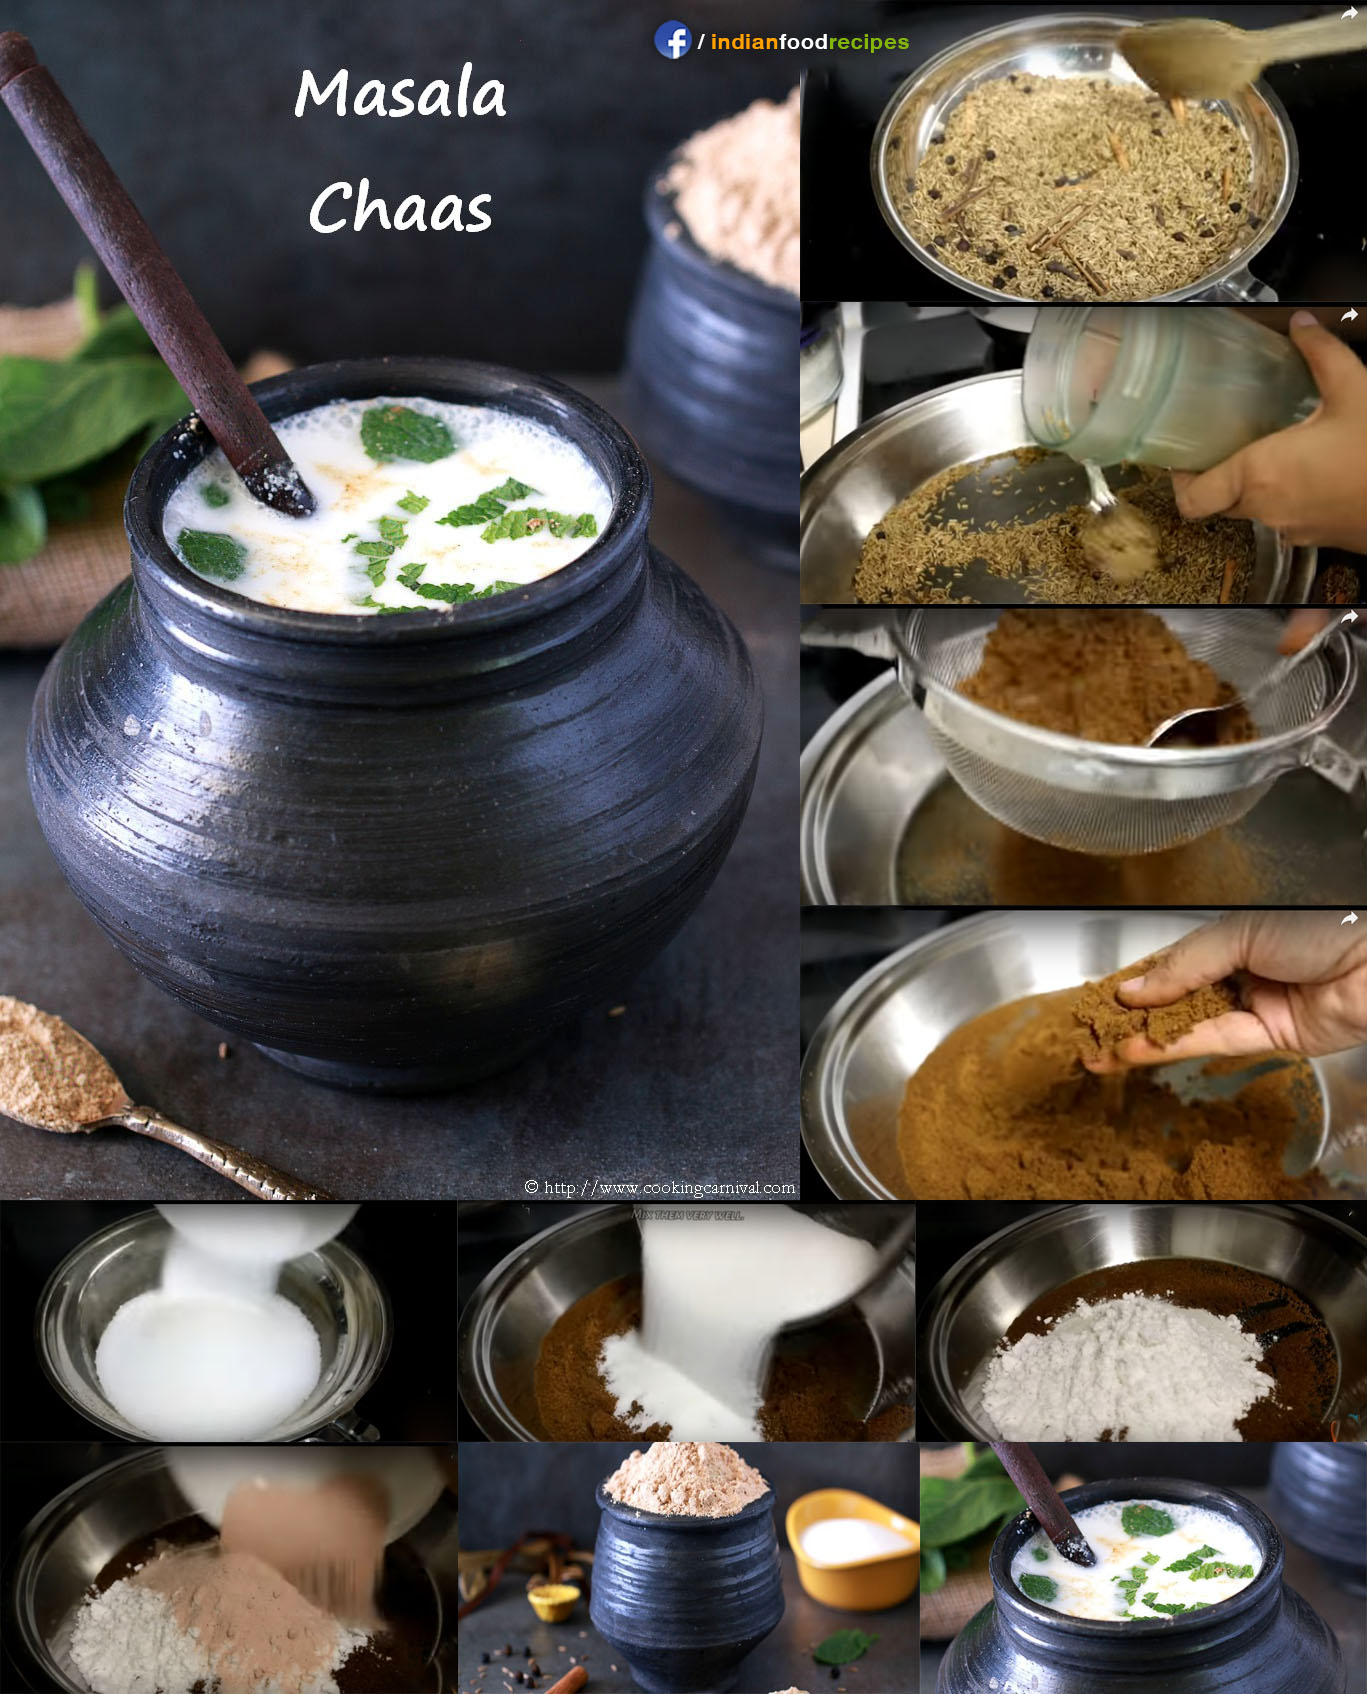 Chaas / Buttermilk Masala recipe step by step